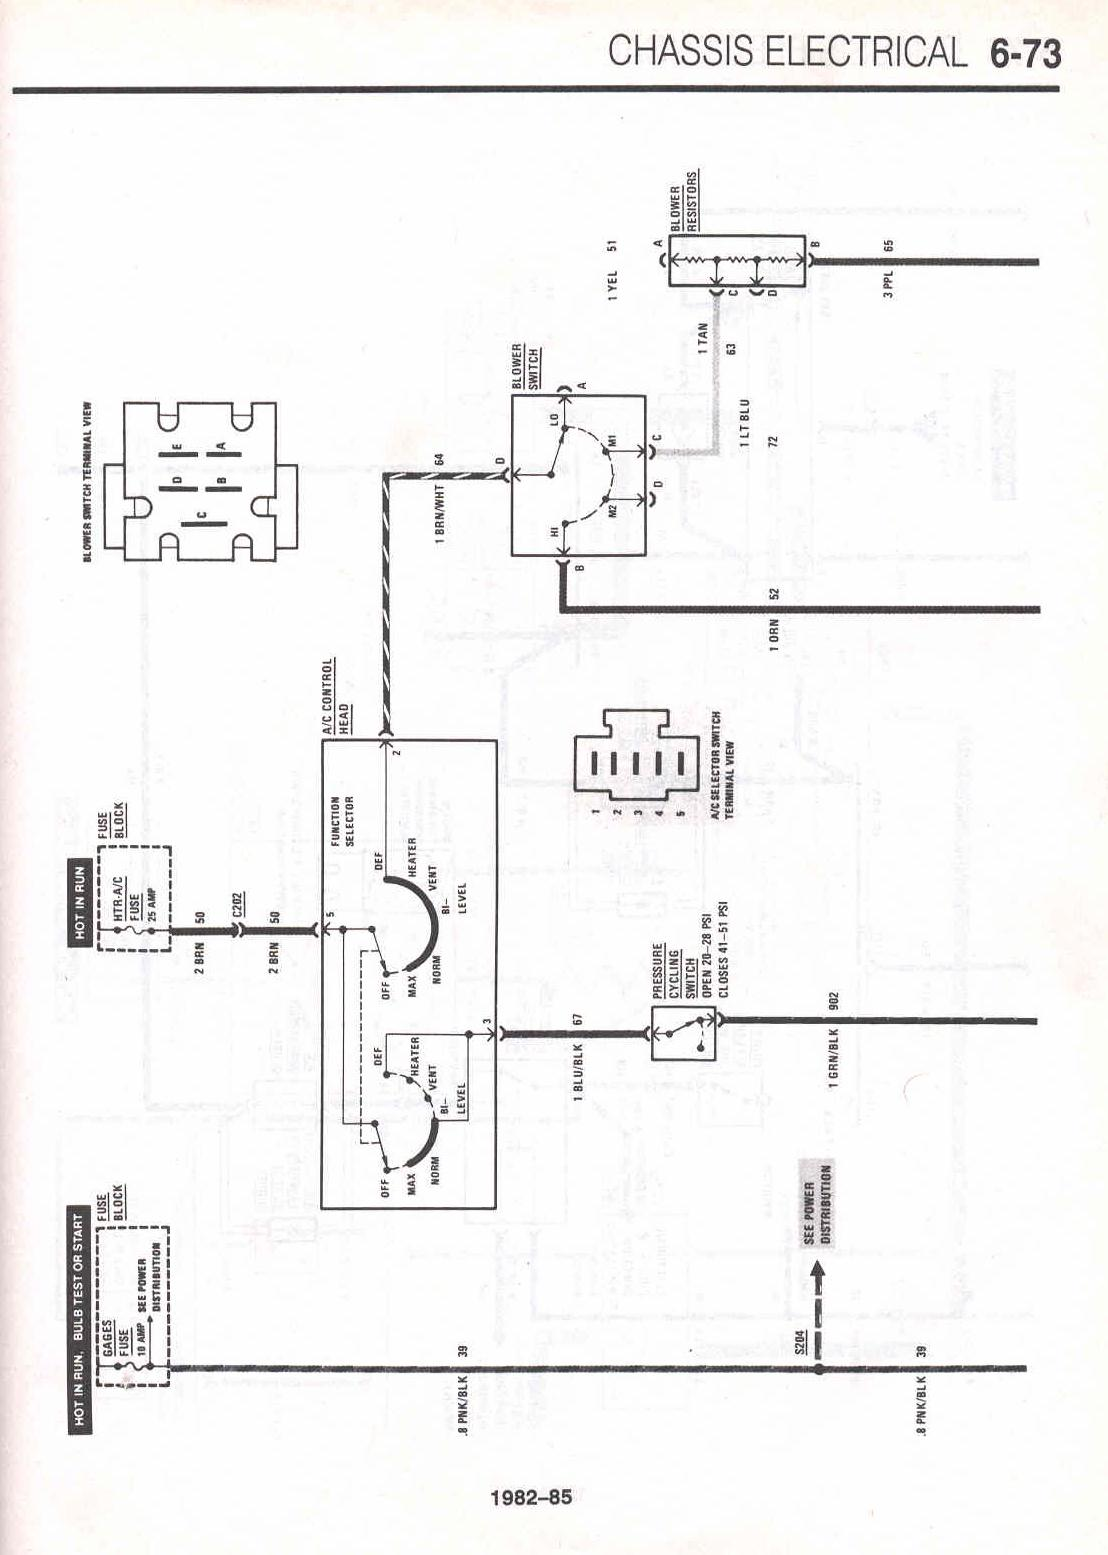 85 camaro headlight wiring diagram 85 camaro distributor wiring diagram